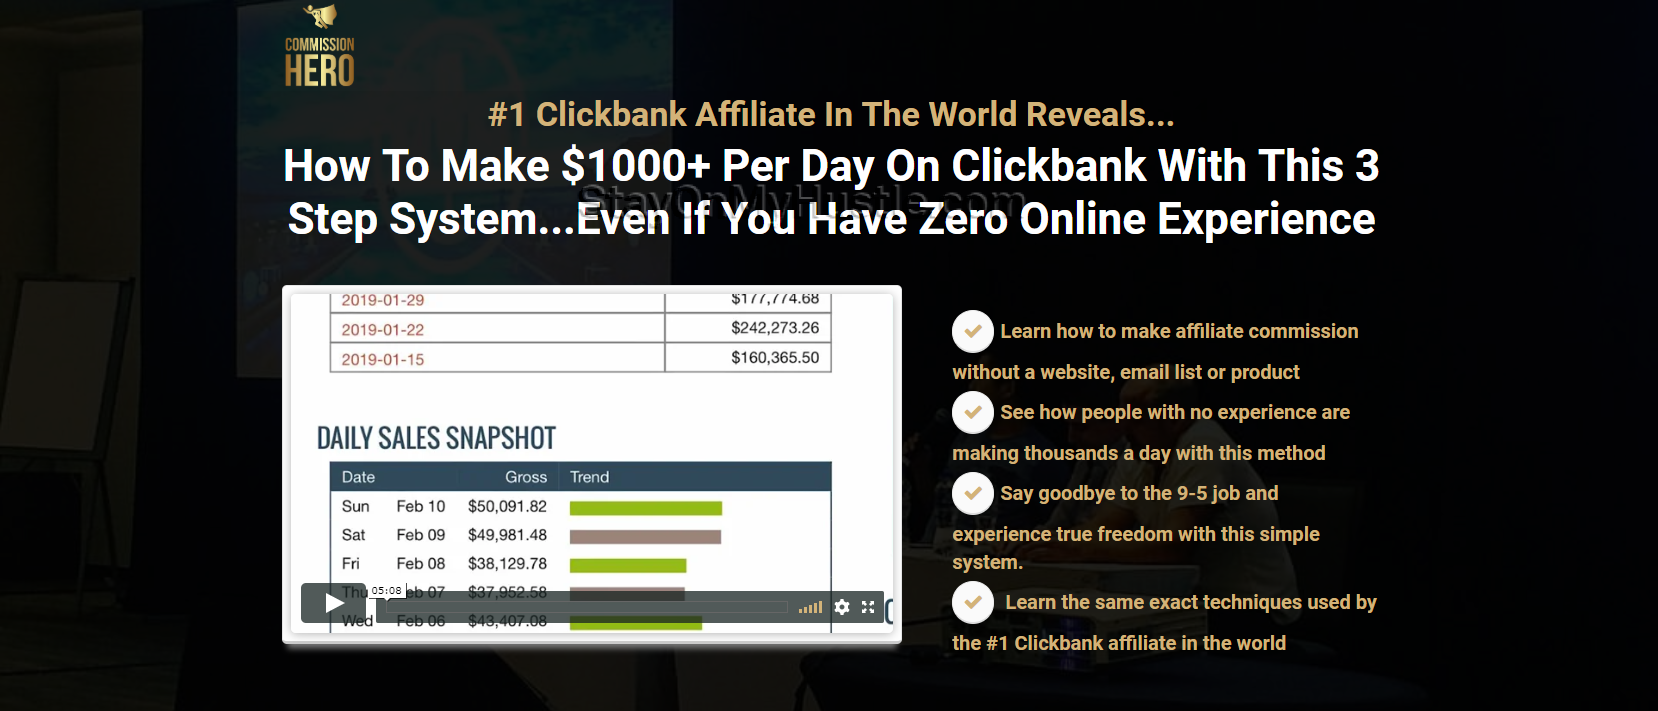 Cheap Refurbished  Commission Hero Affiliate Marketing For Sale